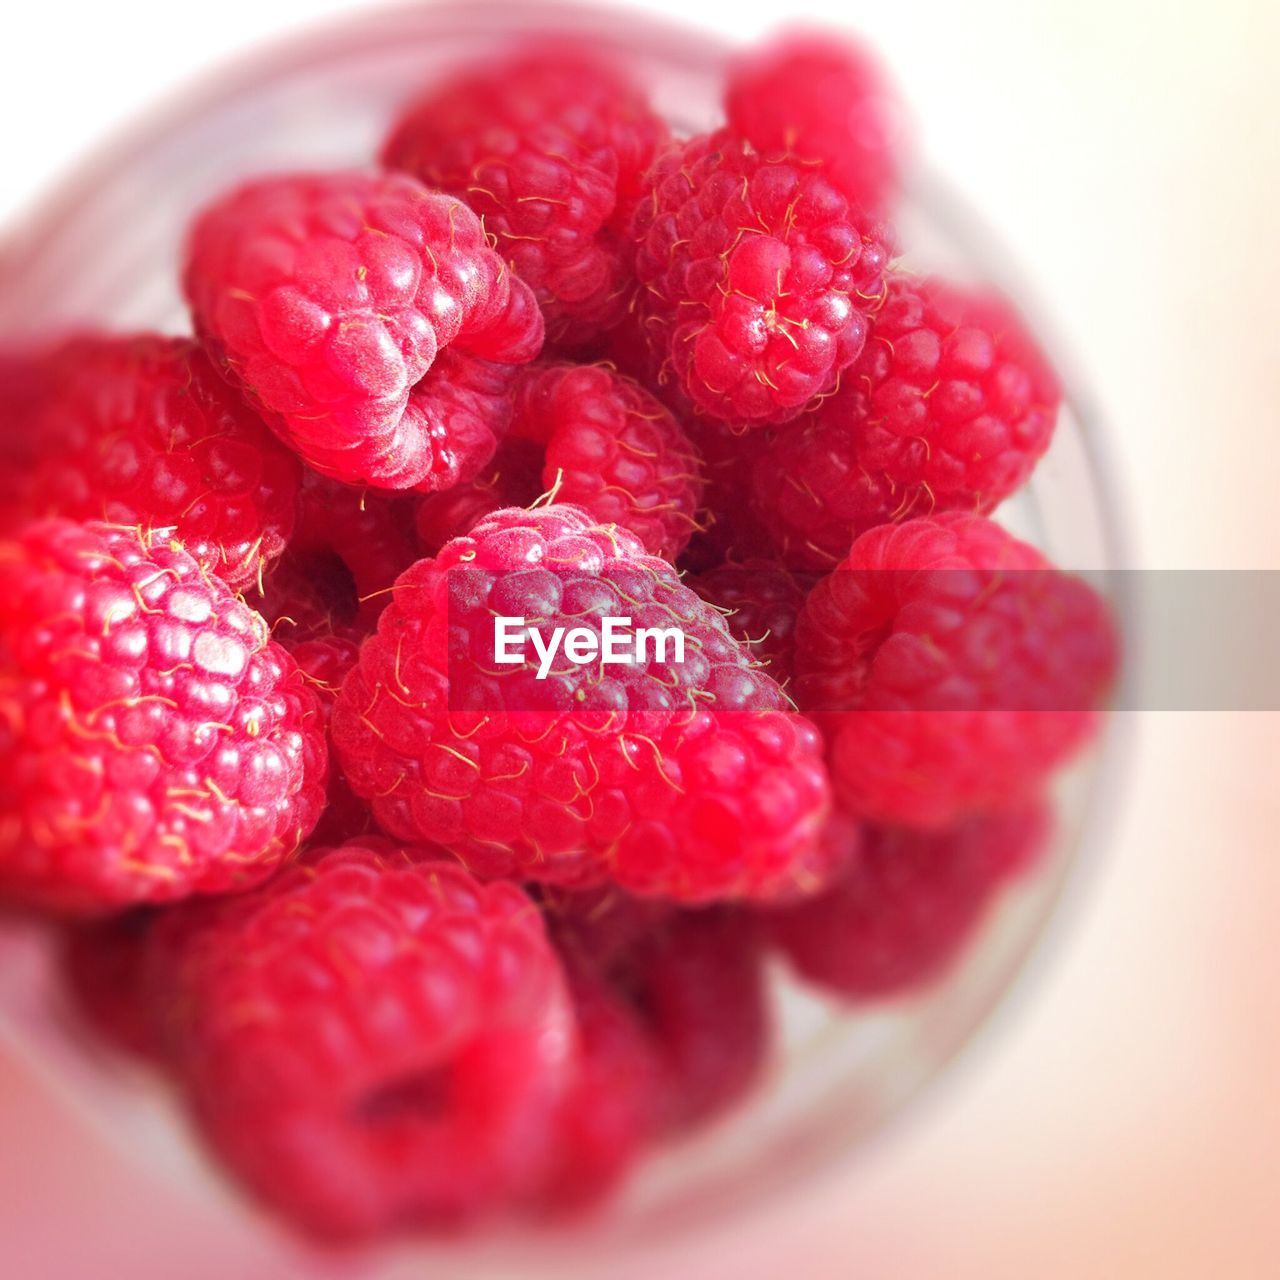 fruit, healthy eating, food and drink, food, berry fruit, red, wellbeing, close-up, freshness, raspberry, still life, bowl, no people, indoors, selective focus, plate, juicy, large group of objects, group of objects, ready-to-eat, ripe, temptation